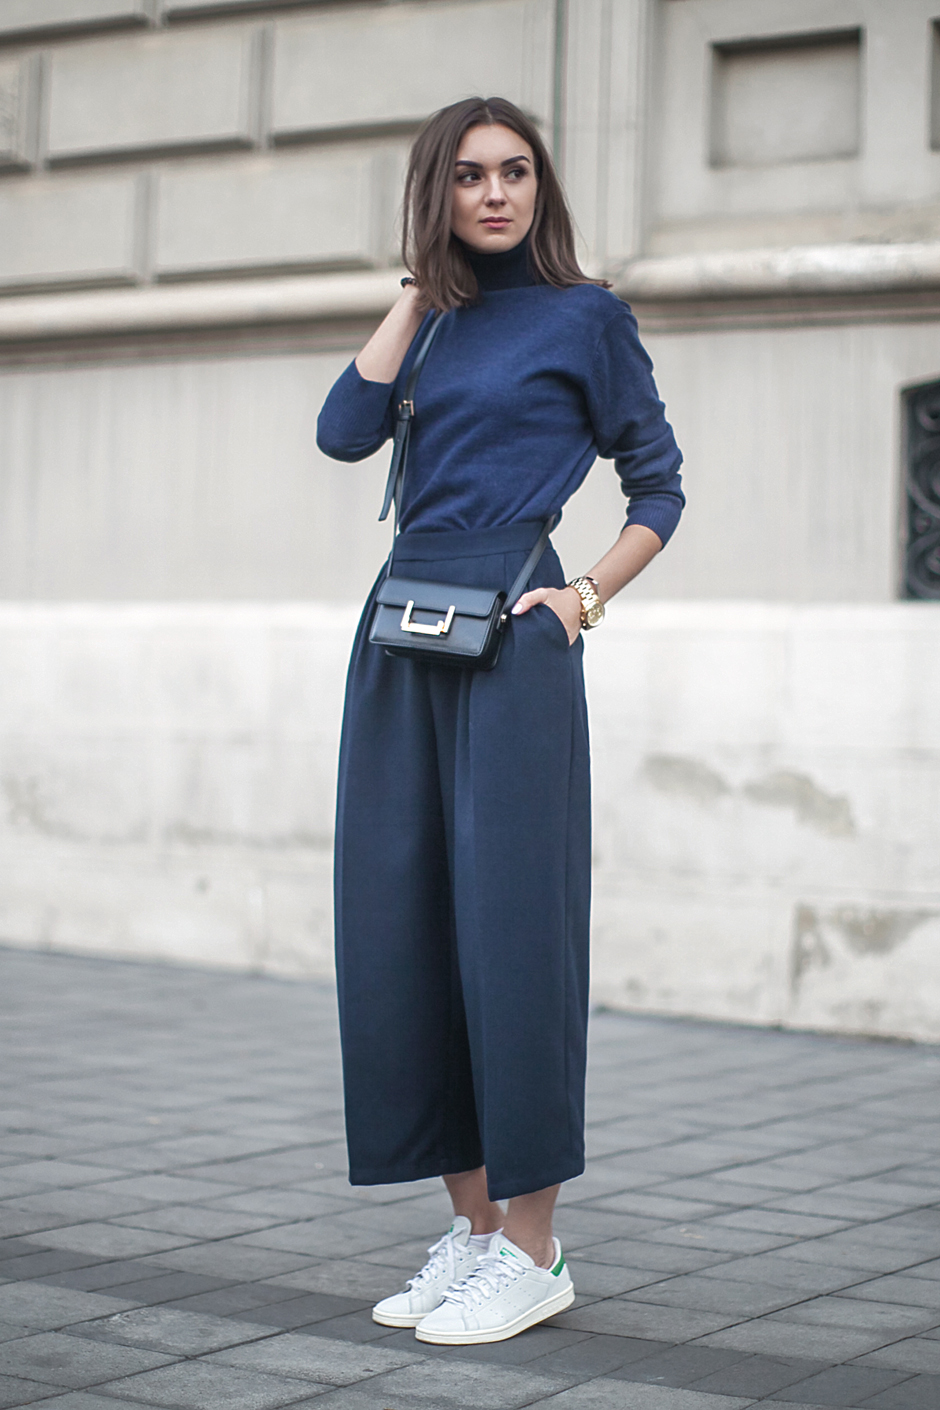 monochromatic-blue-outfit-street-style-blog